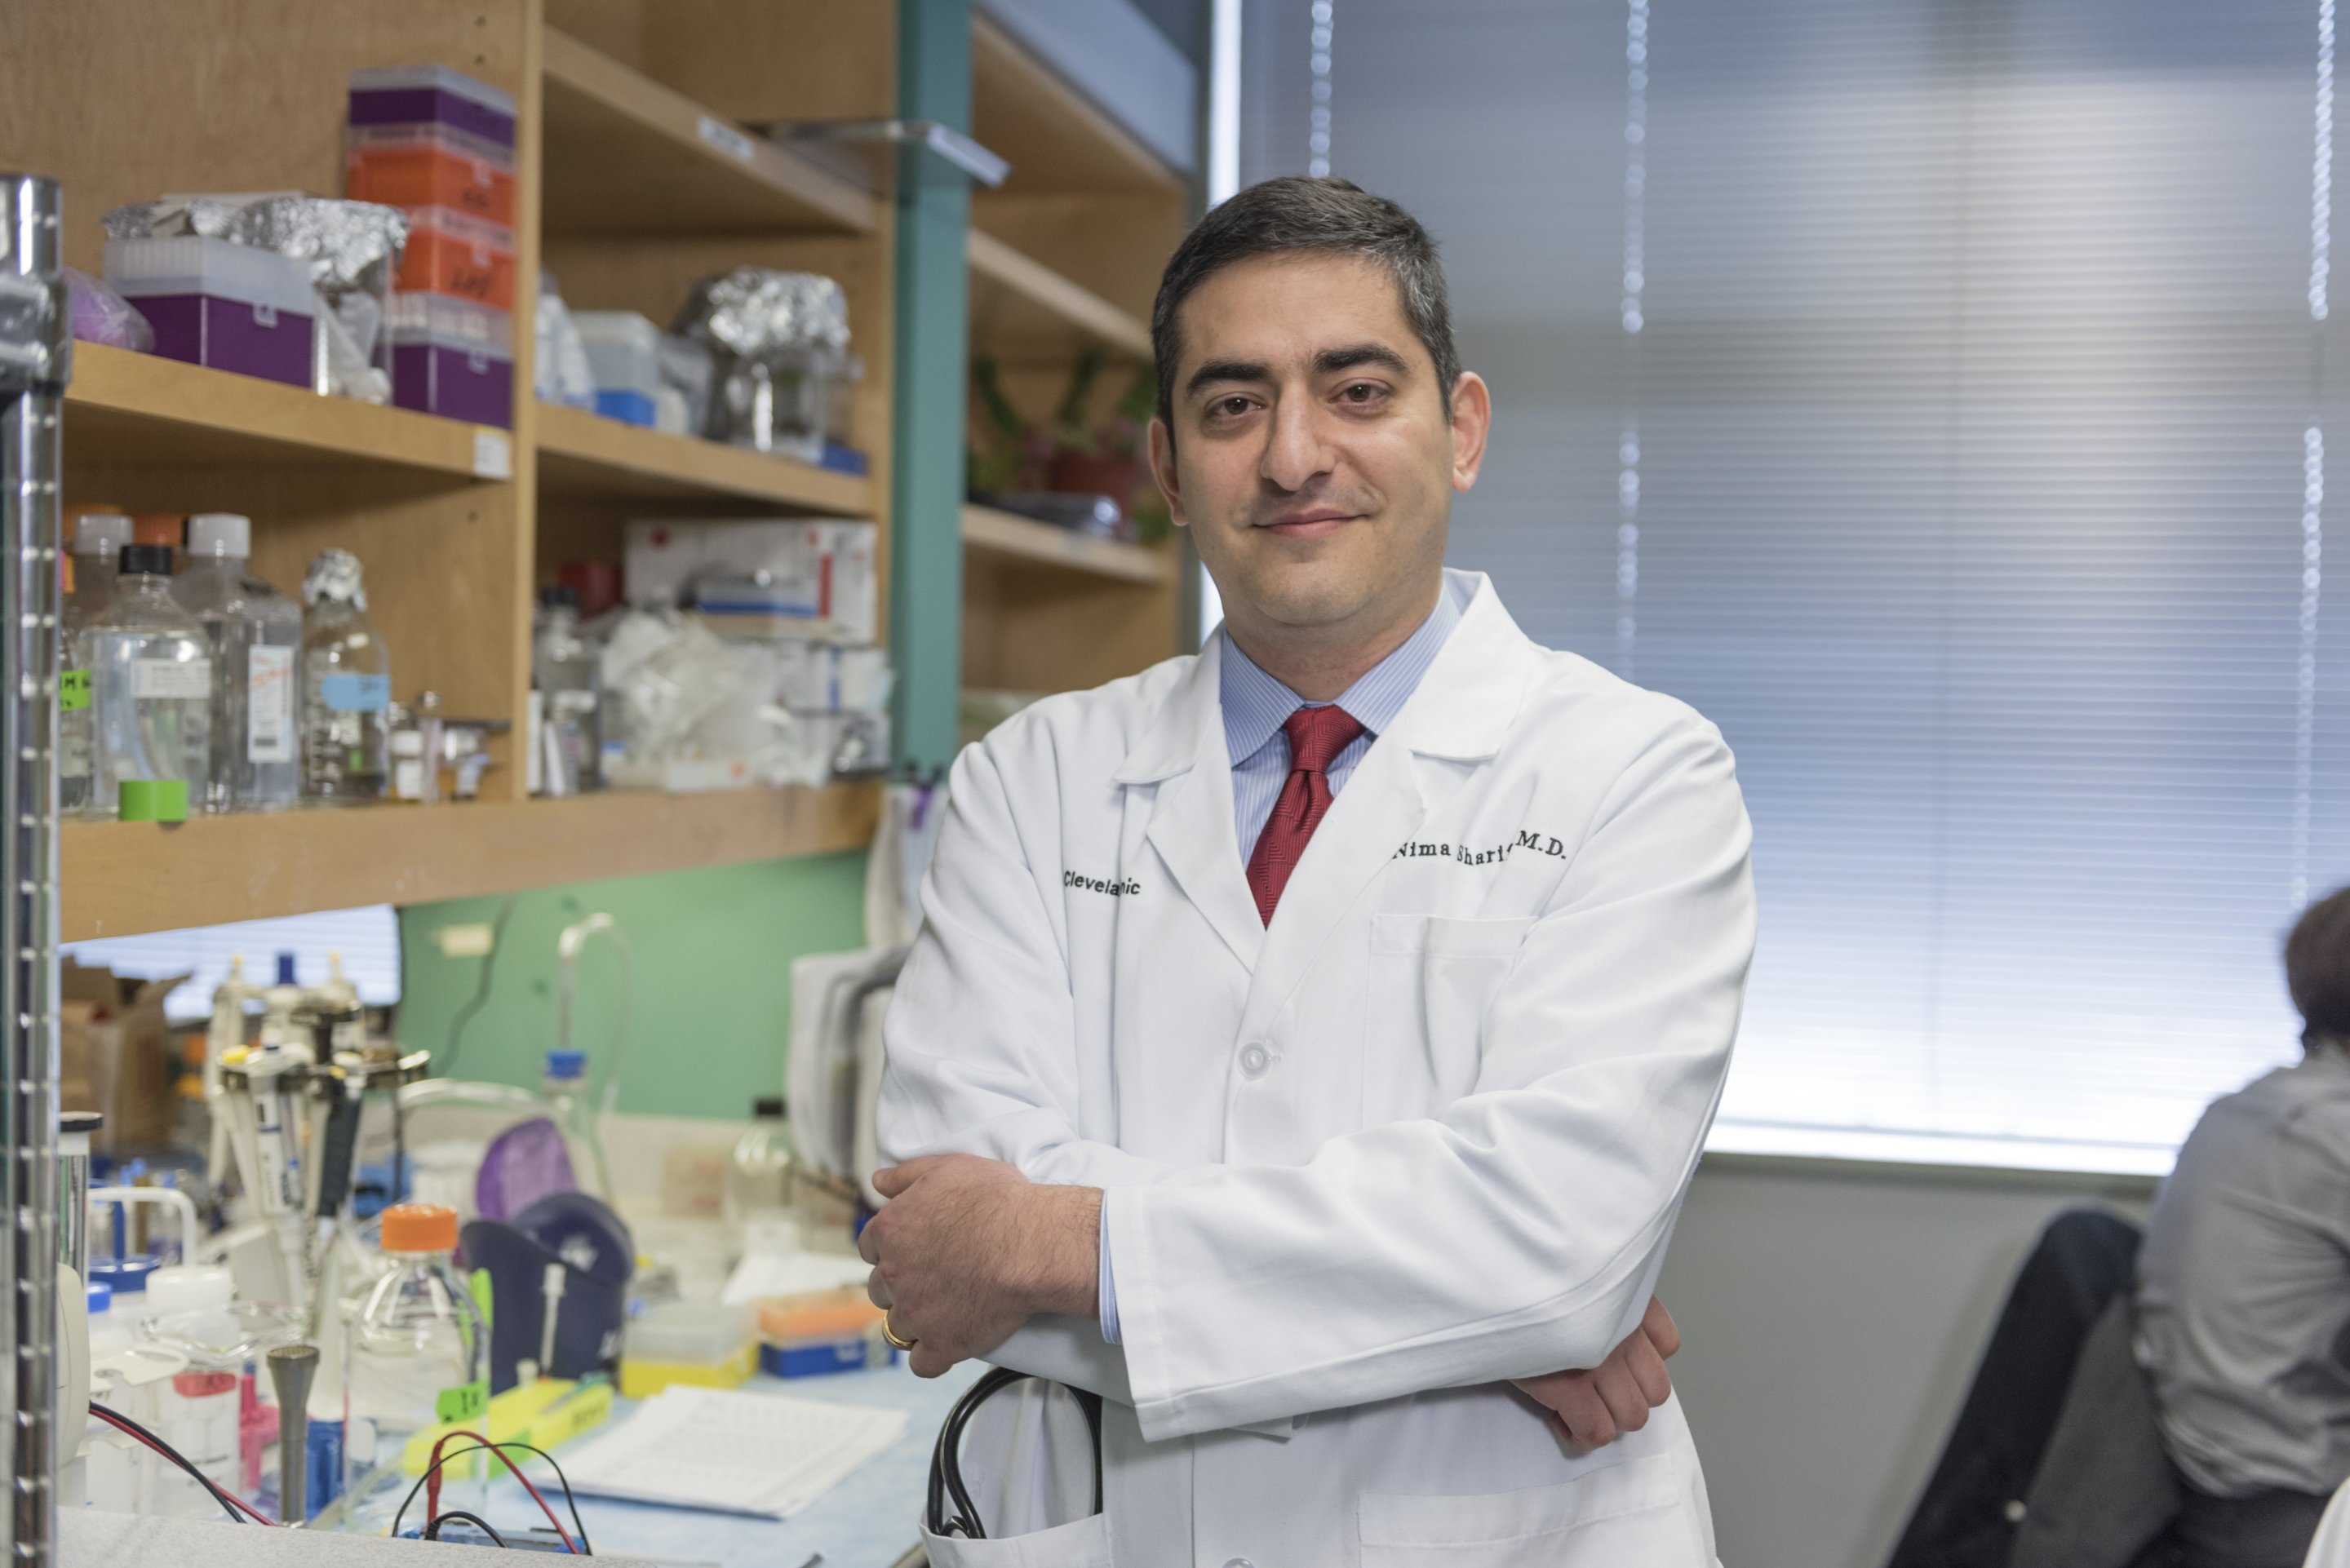 Researchers Find Prostate Cancer Drug Byproduct Can Fuel